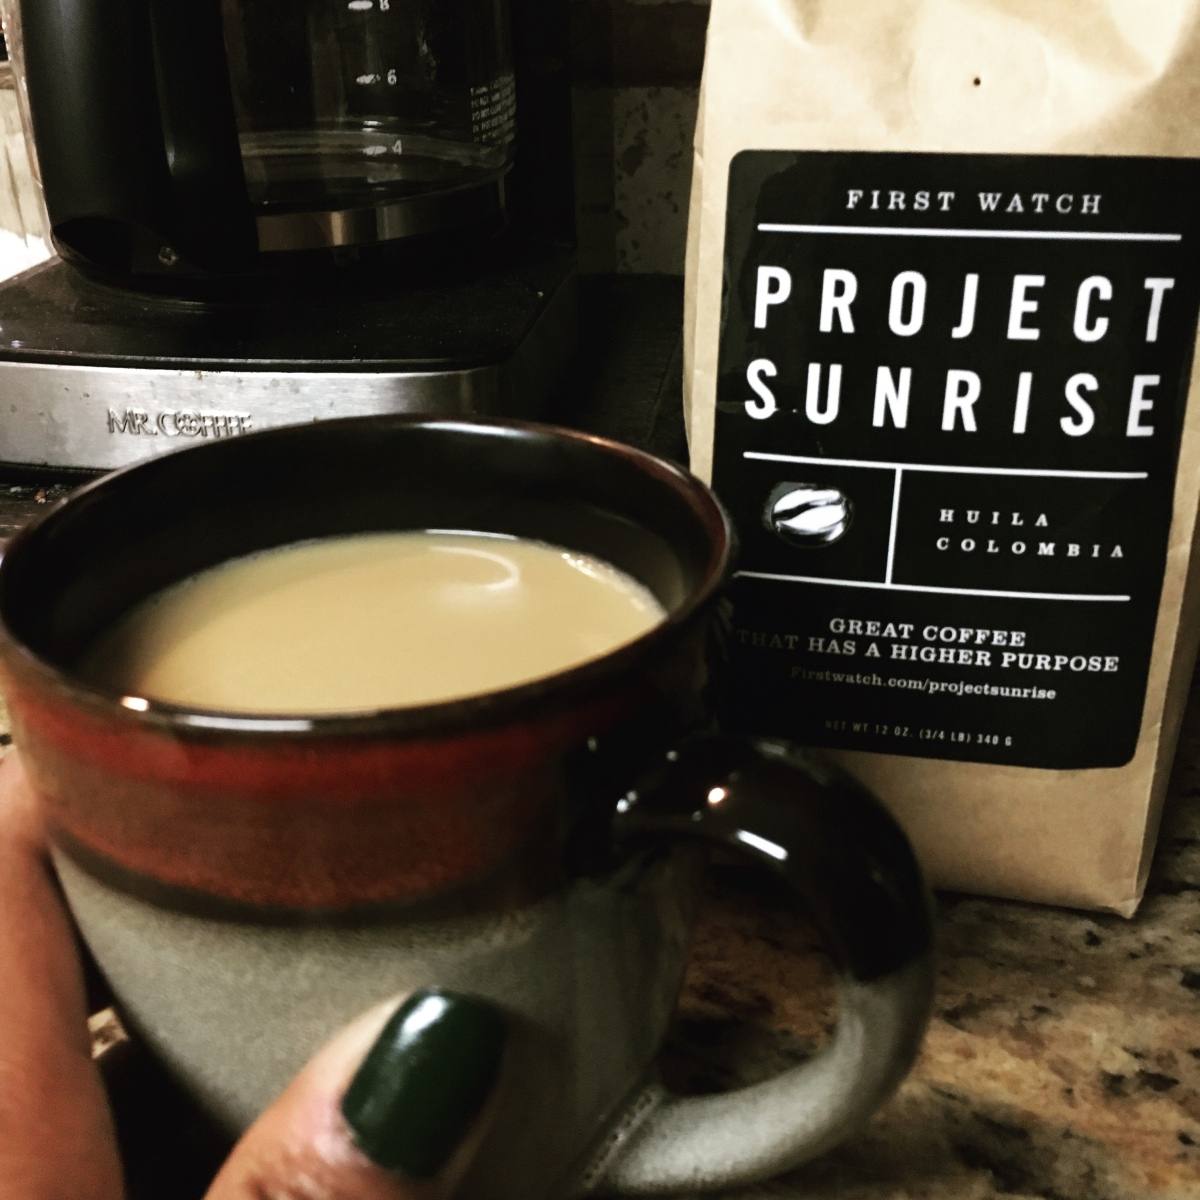 Coffee with a purpose